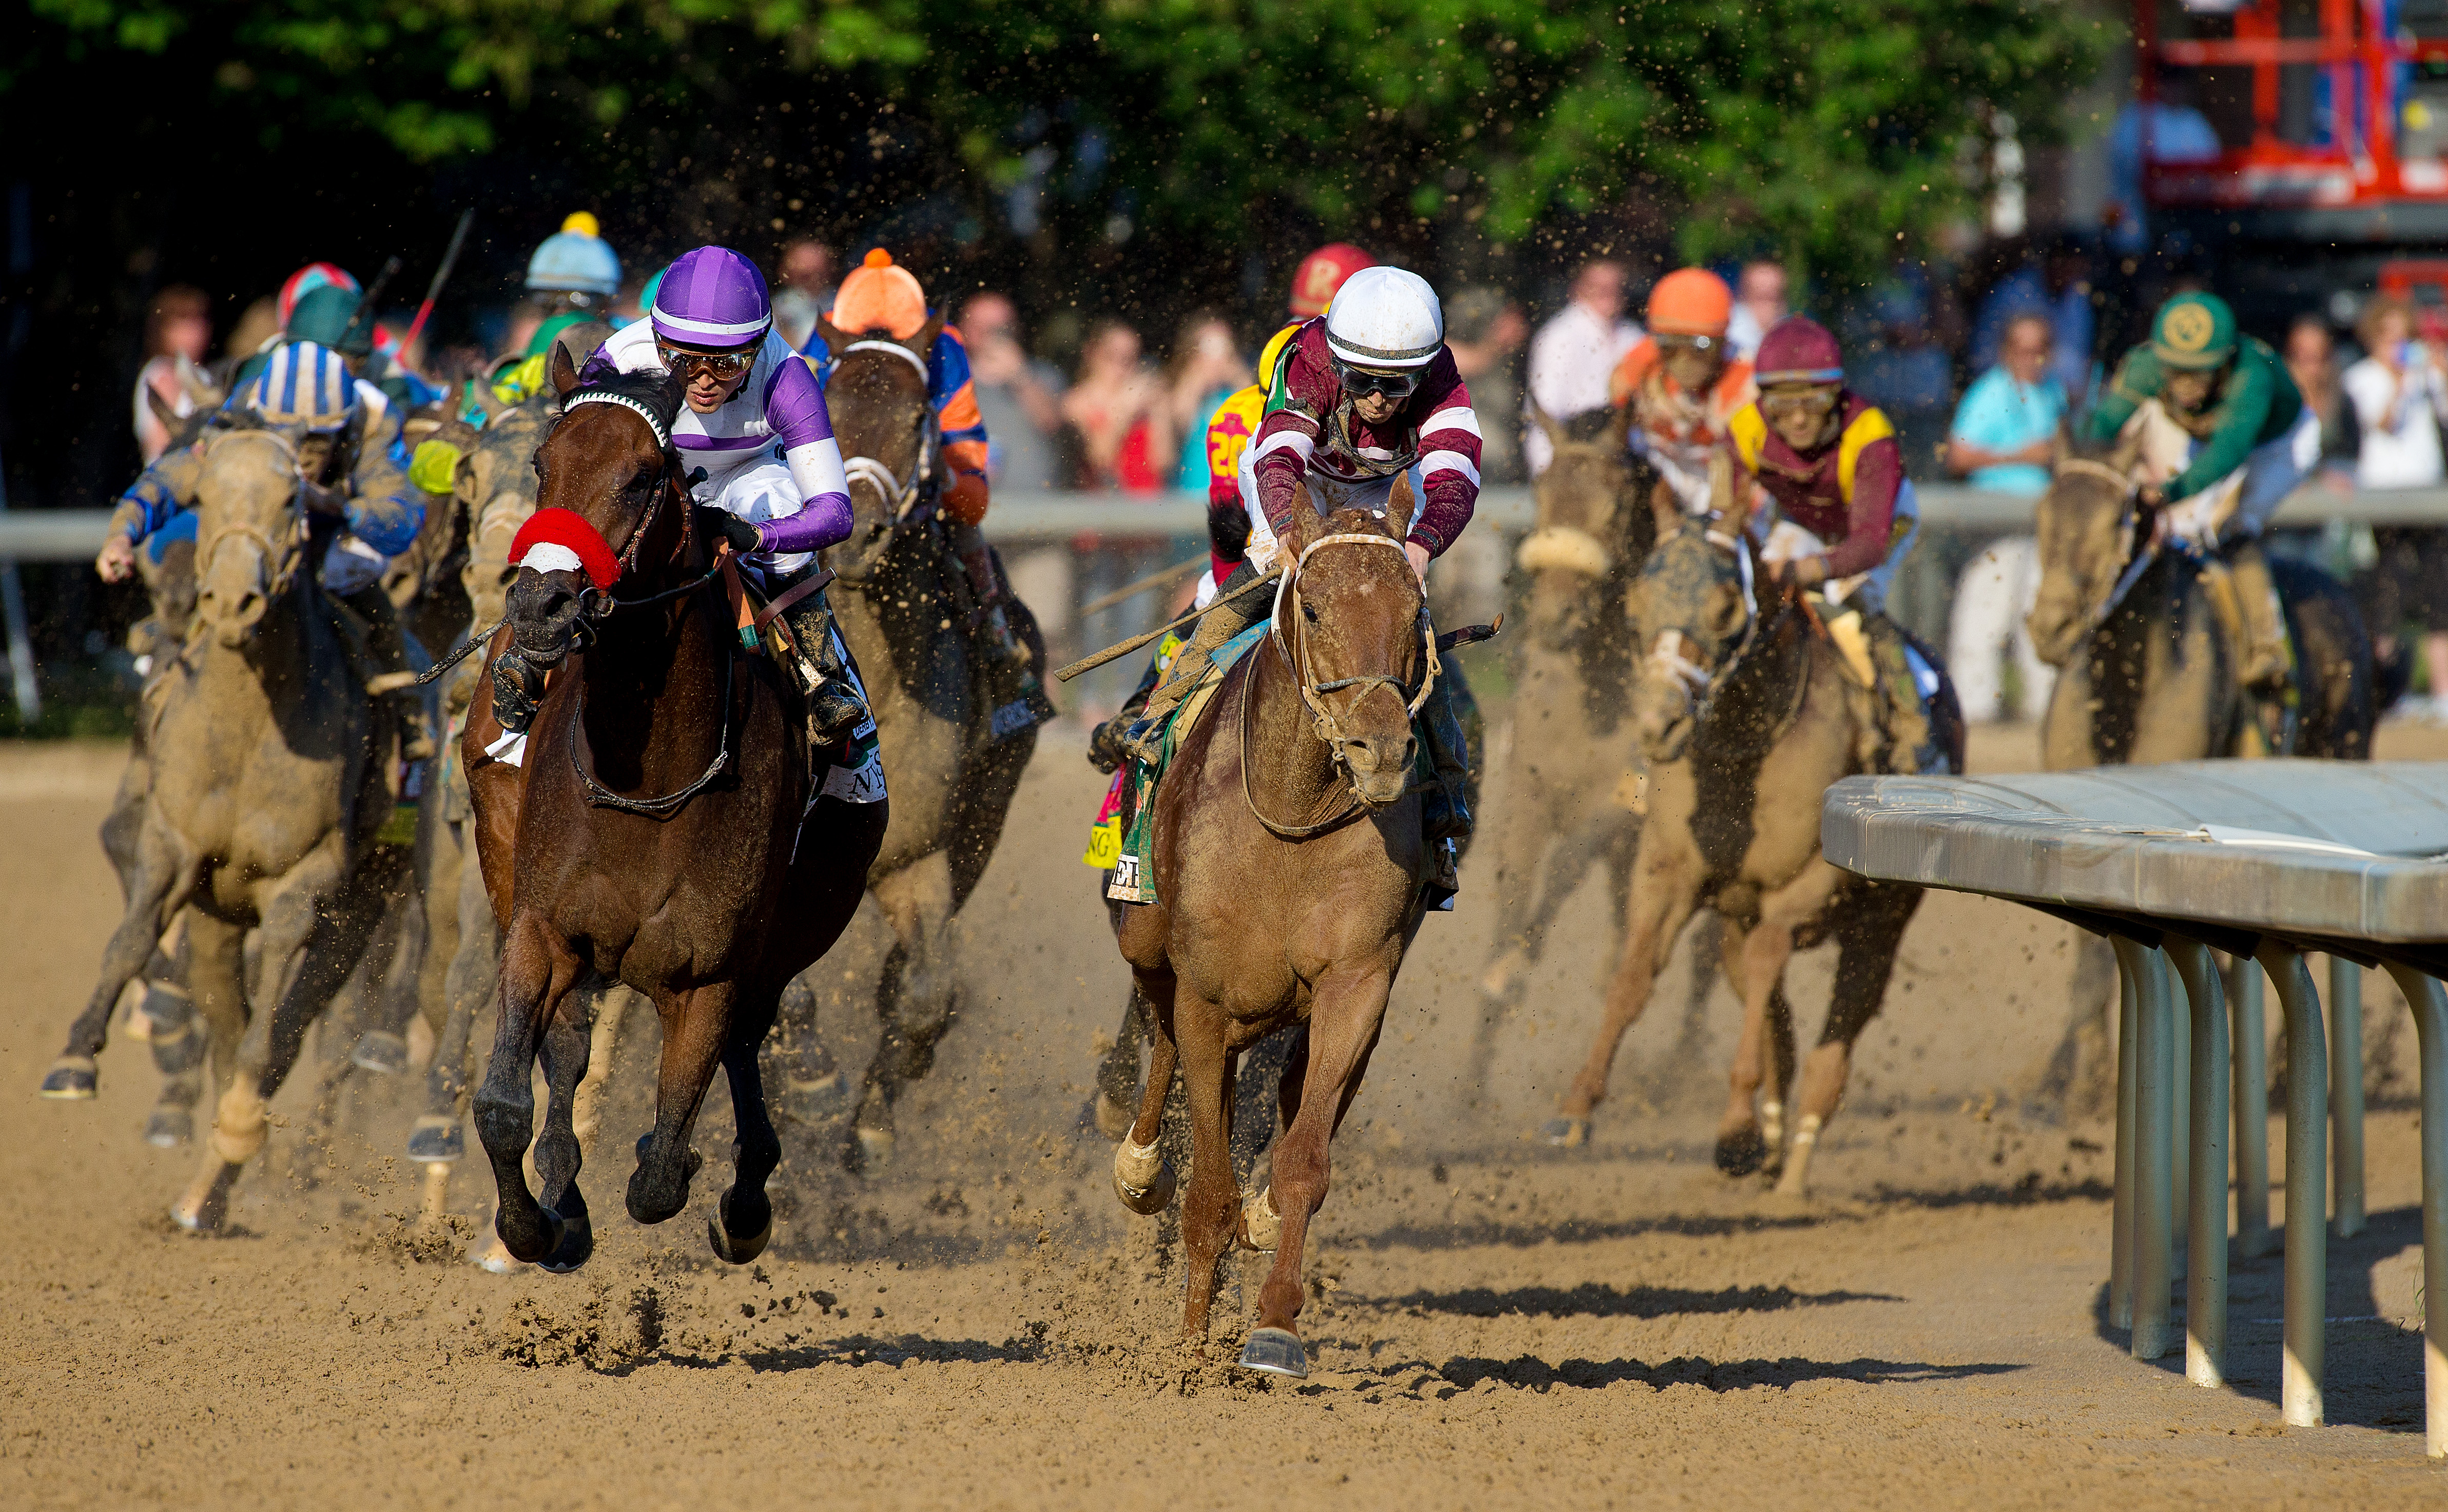 Gutierrez steered Nyquist to the outside on the final turn and the colt completed the 1 1/4 miles in 2:01.31.